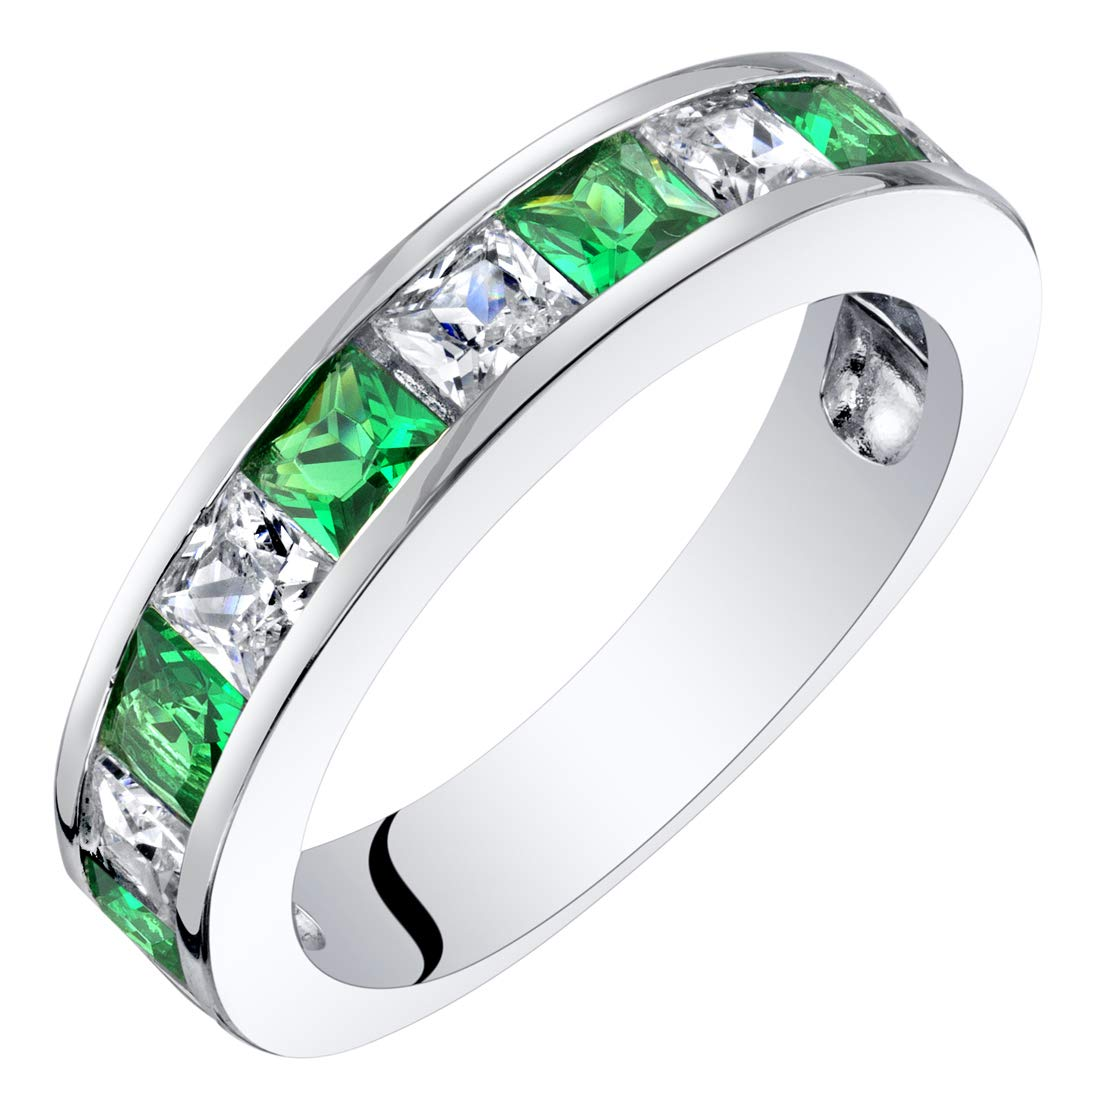 Sterling Silver Princess Cut Simulated Emerald Half Eternity Wedding Ring Band Size 5 by Peora